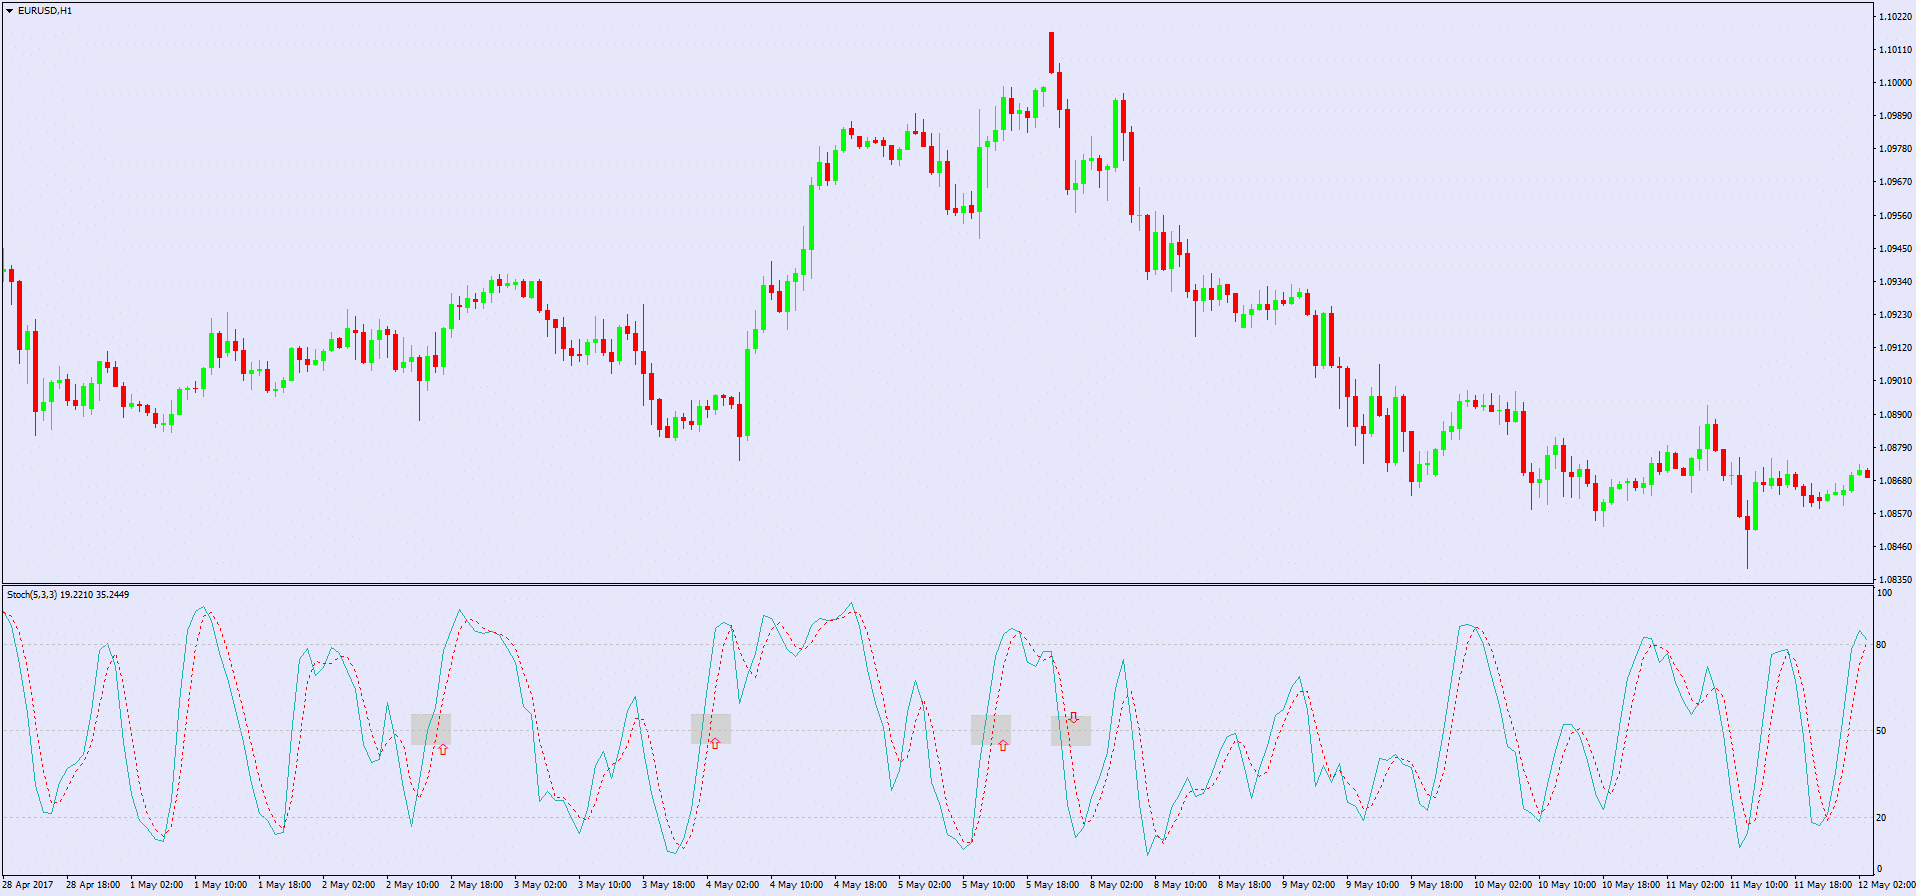 How to use stochastic indicator in forex trading